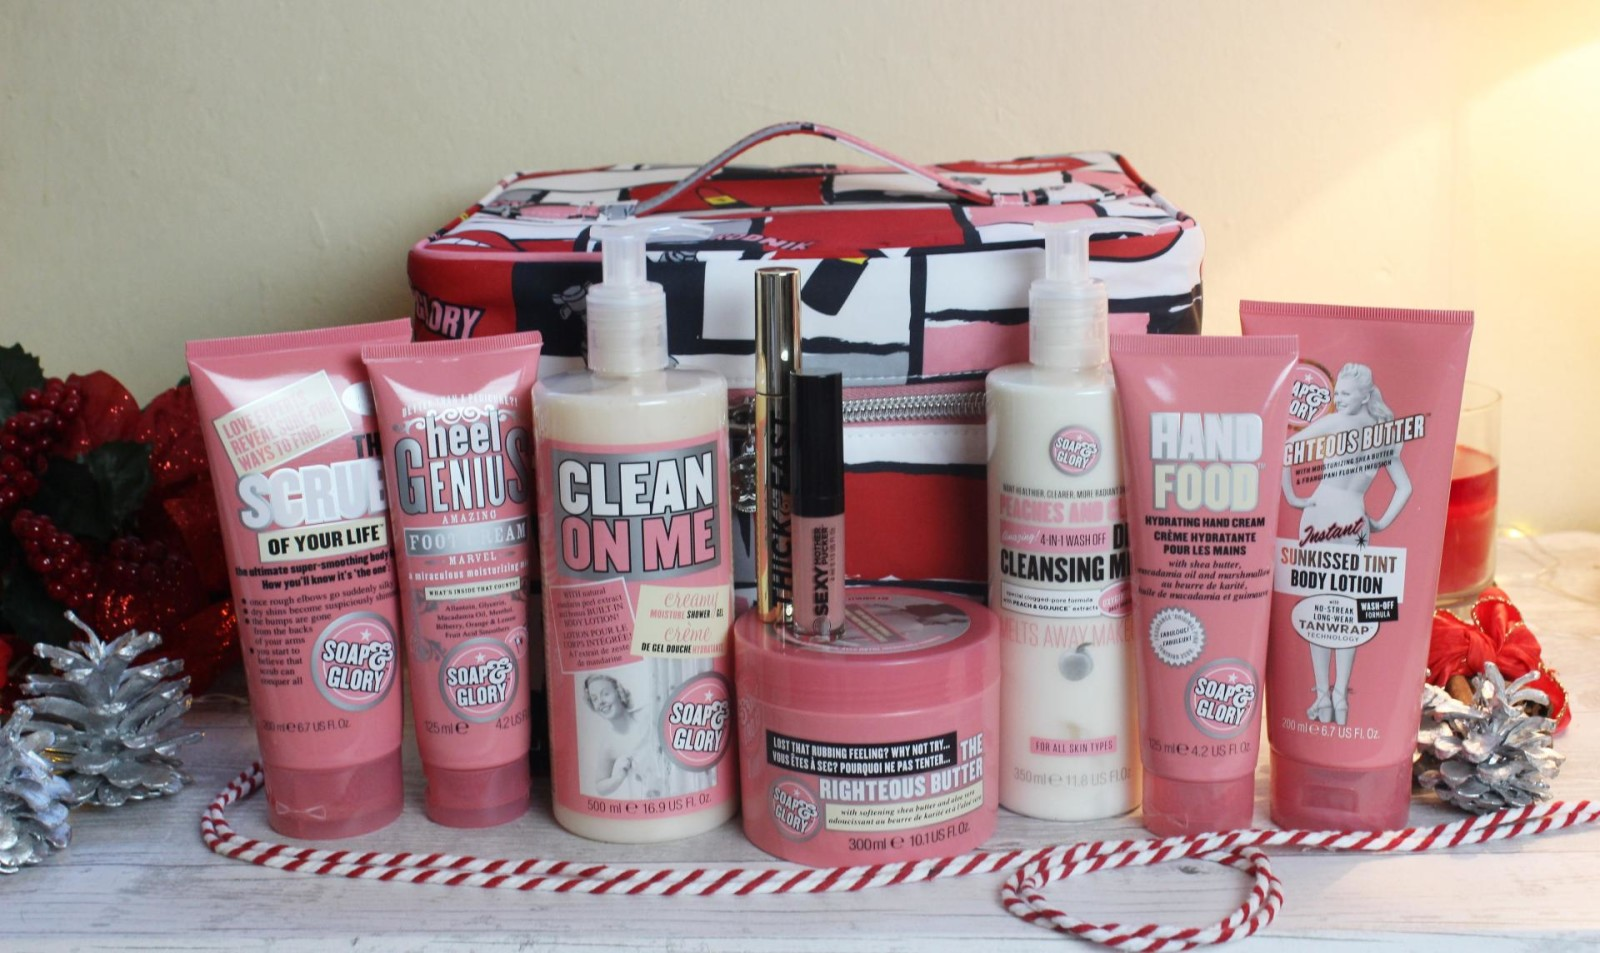 Soap and Glory It's The Whole She-Bang